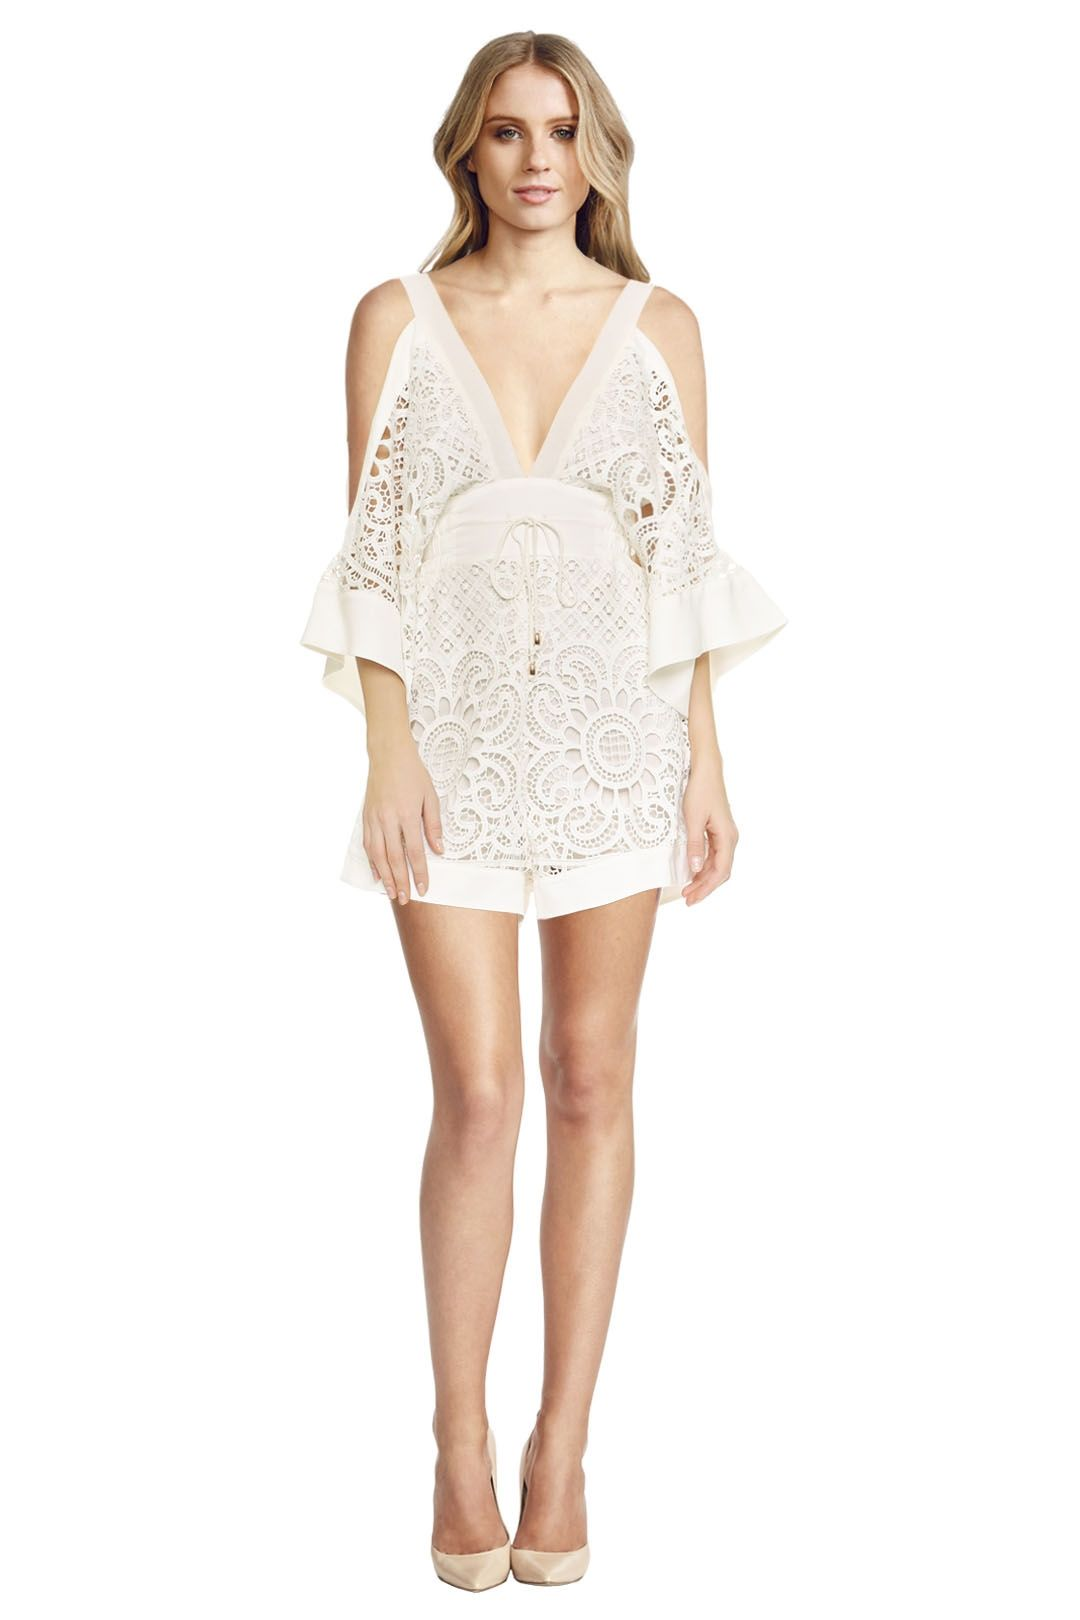 Alice McCall - Keep me there Playsuit - White - Front